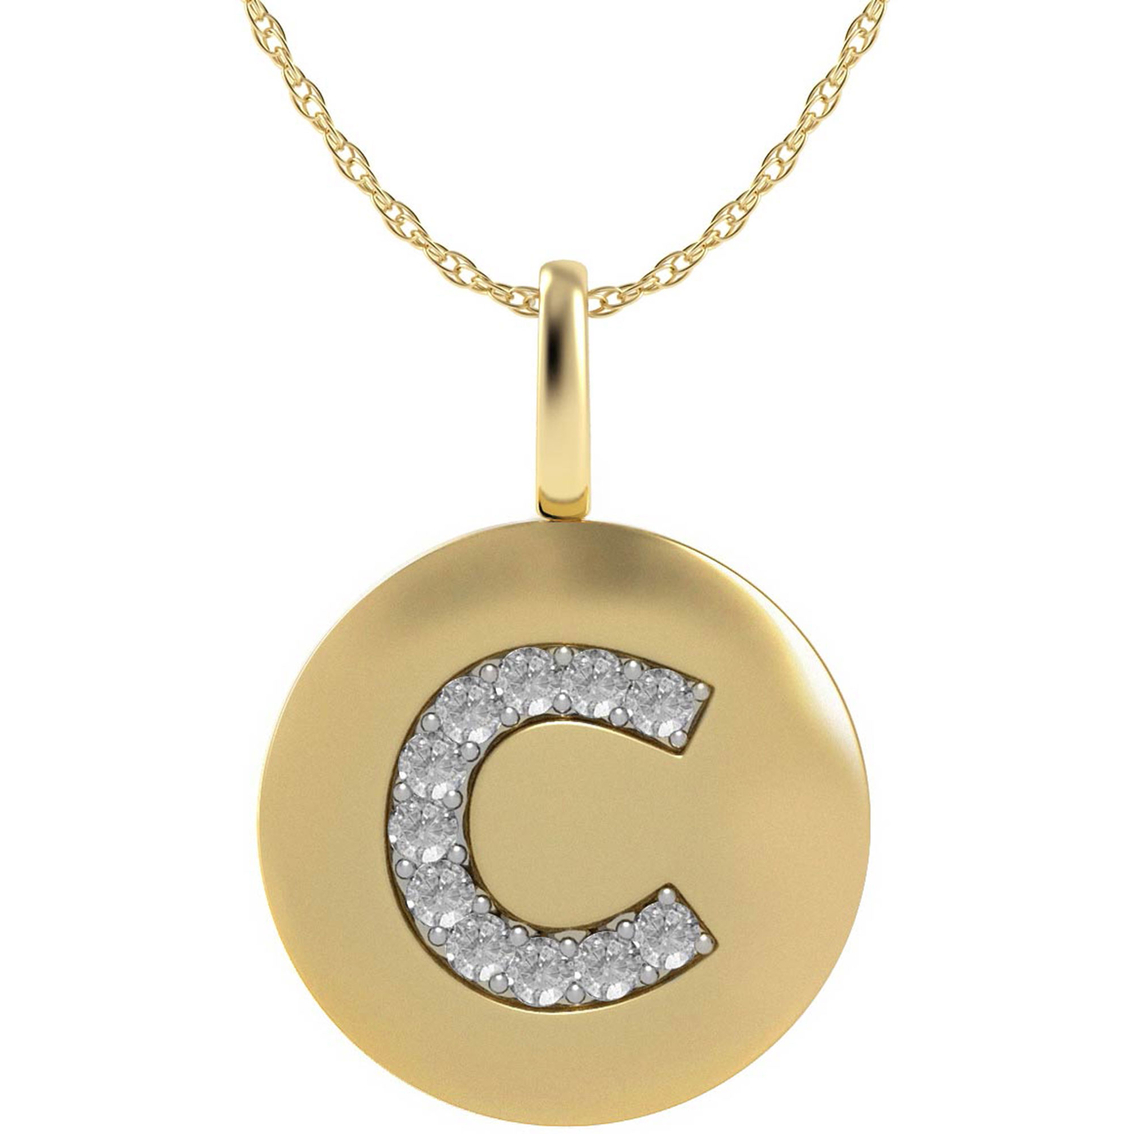 14k yellow gold letter c disk pendant with diamond accents for Letter c gold pendant